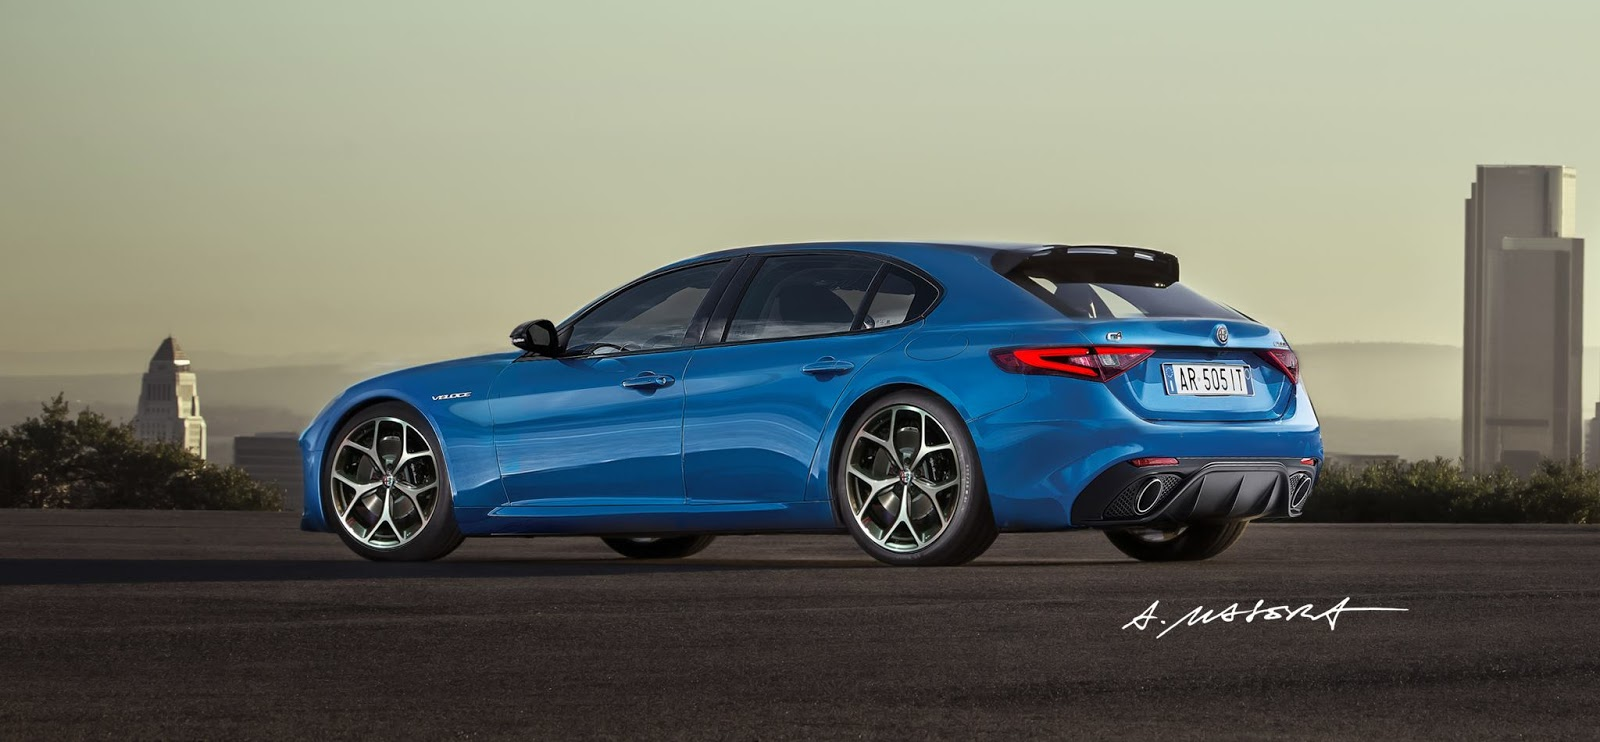 alfa romeo giulia veloce could be the perfect shooting brake carscoops. Black Bedroom Furniture Sets. Home Design Ideas